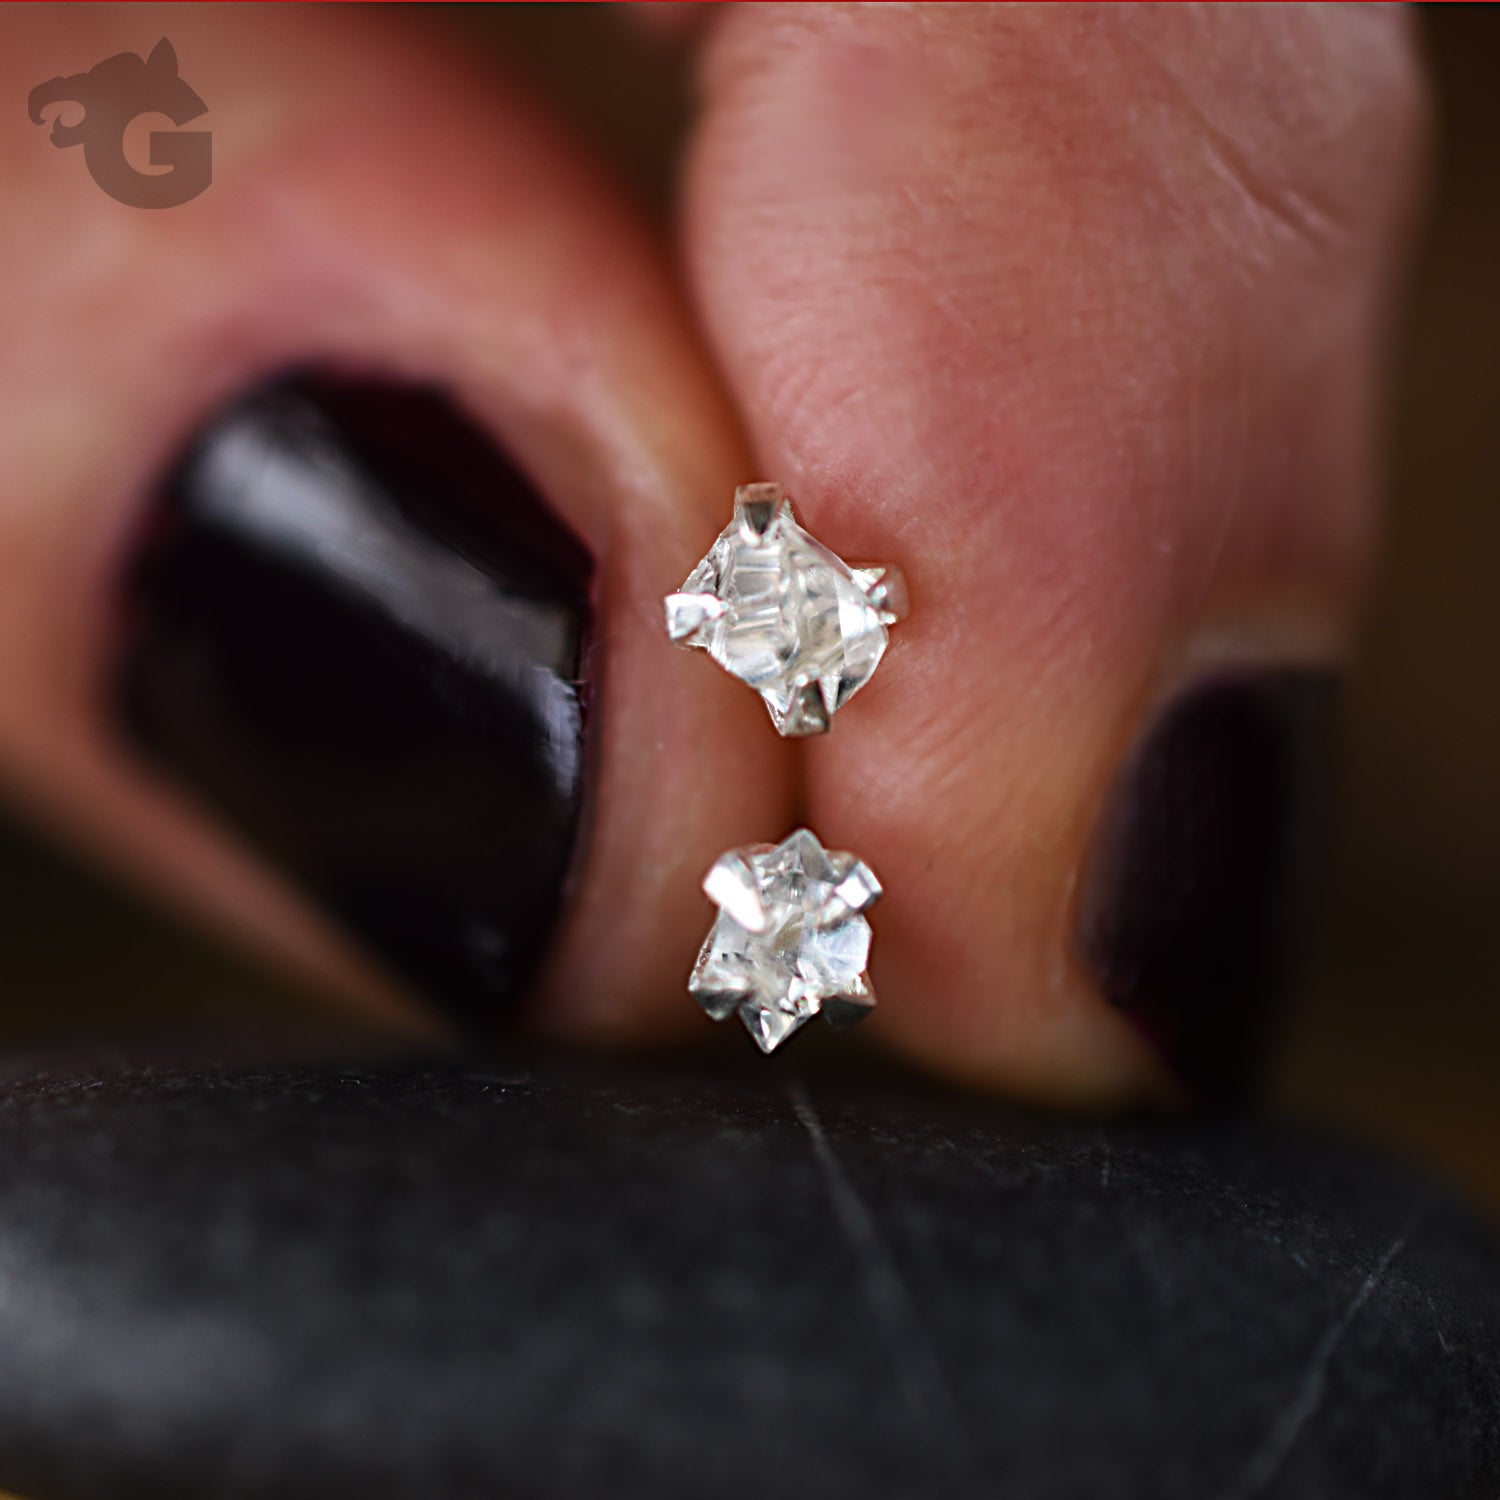 Herkimer Diamond stud earrings clear superb quality single or a pair to choose from - Glermes.com